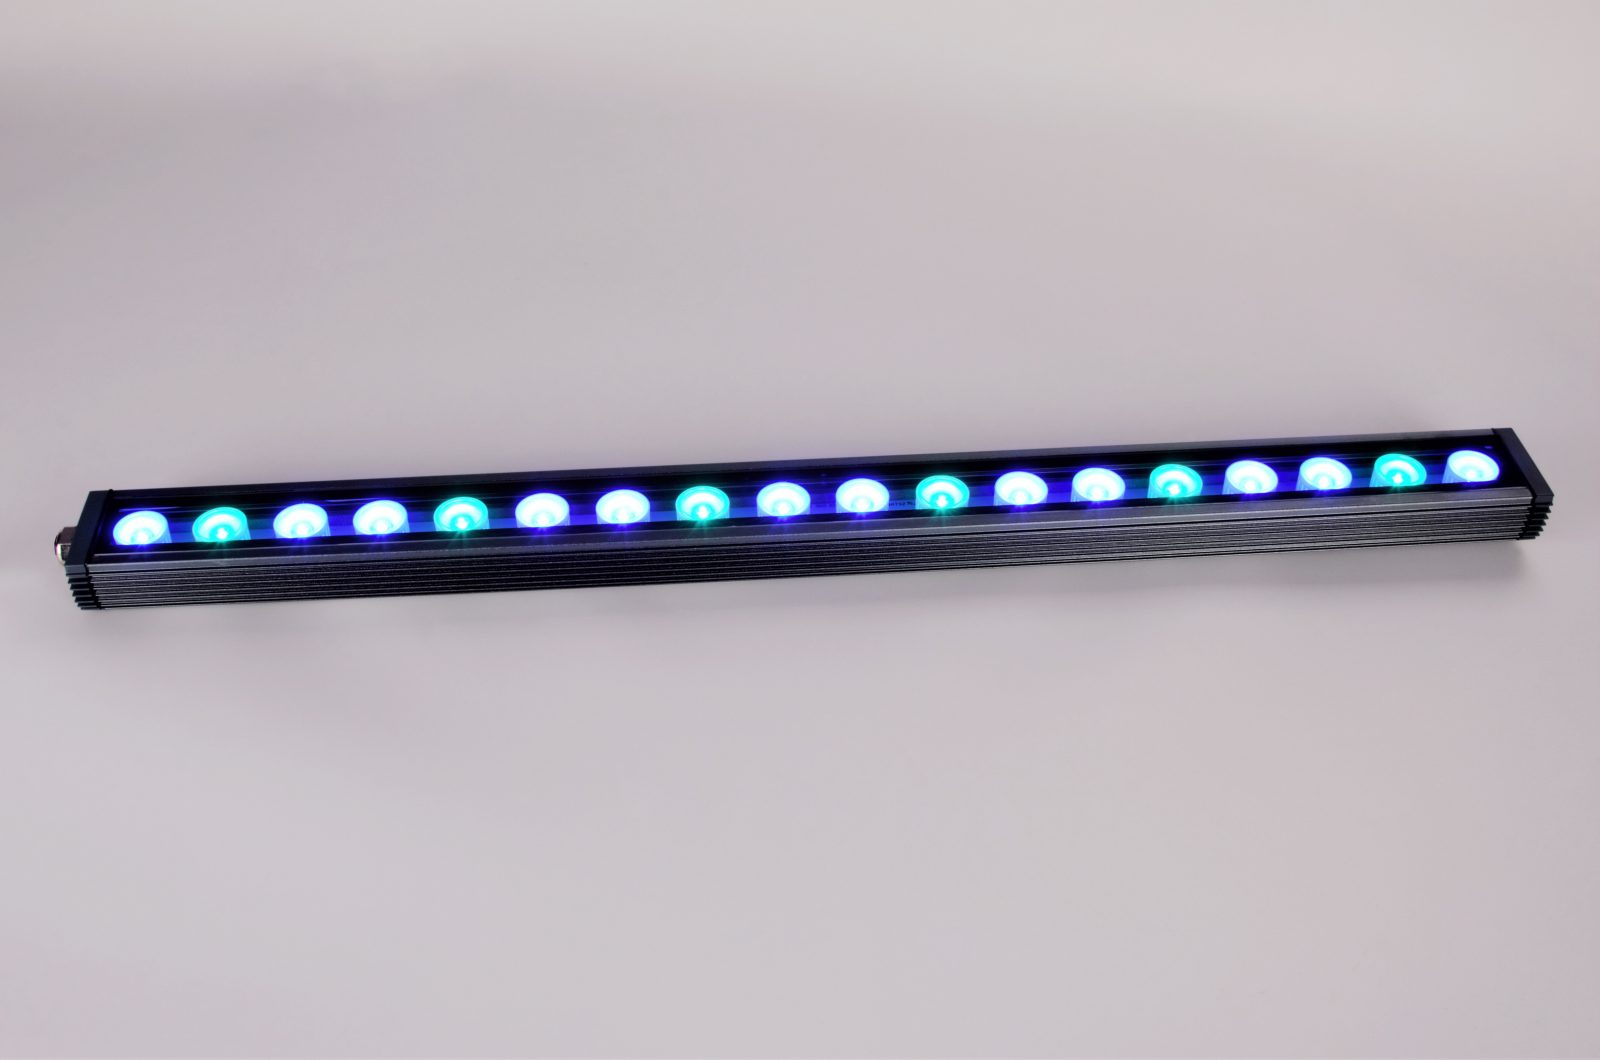 24-inch-OR-60-reef-blue 하늘 -LED 라이트